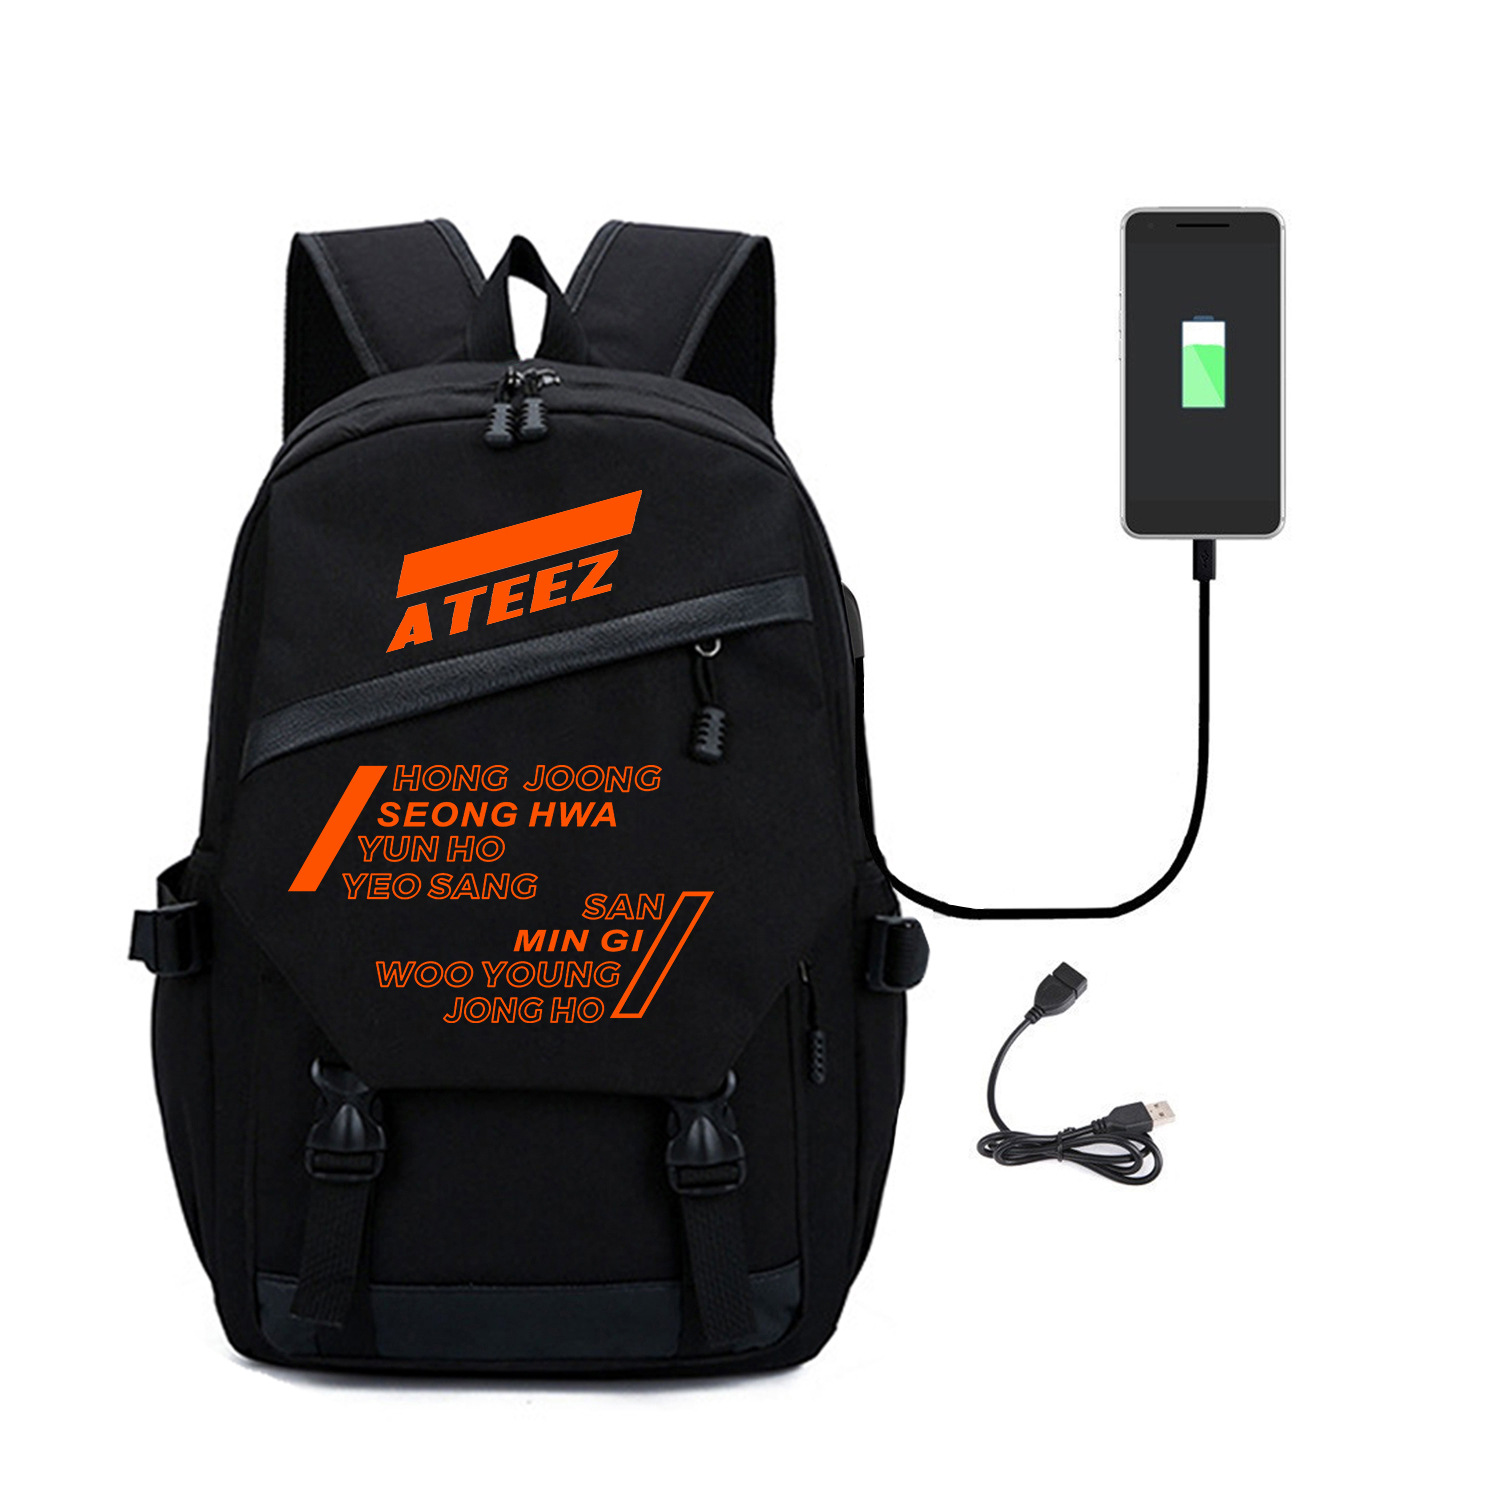 Kpop ATEEZ Backpack Fashion member schoolbag high quality black Backpack peripheral computer bag new arrivals polyester fabrics